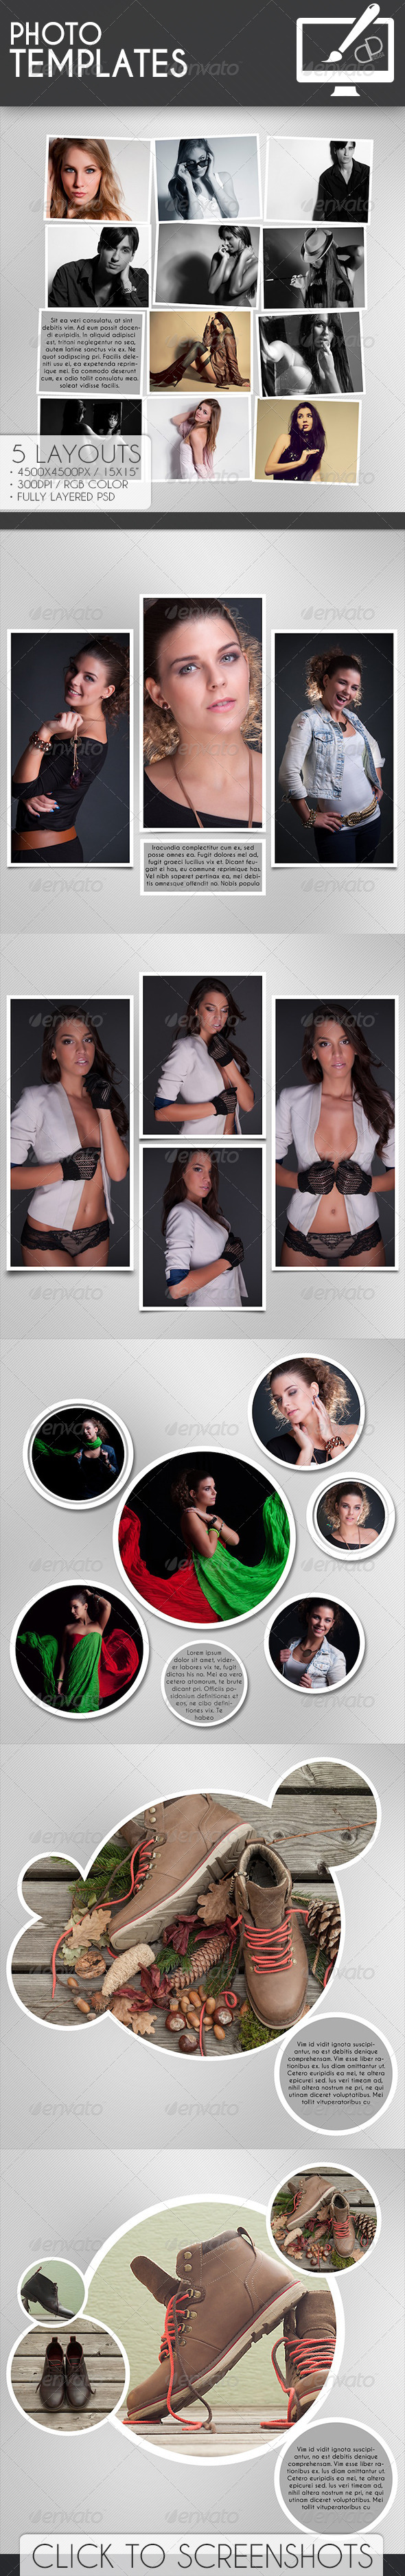 Photo Templates - Photo Templates Graphics